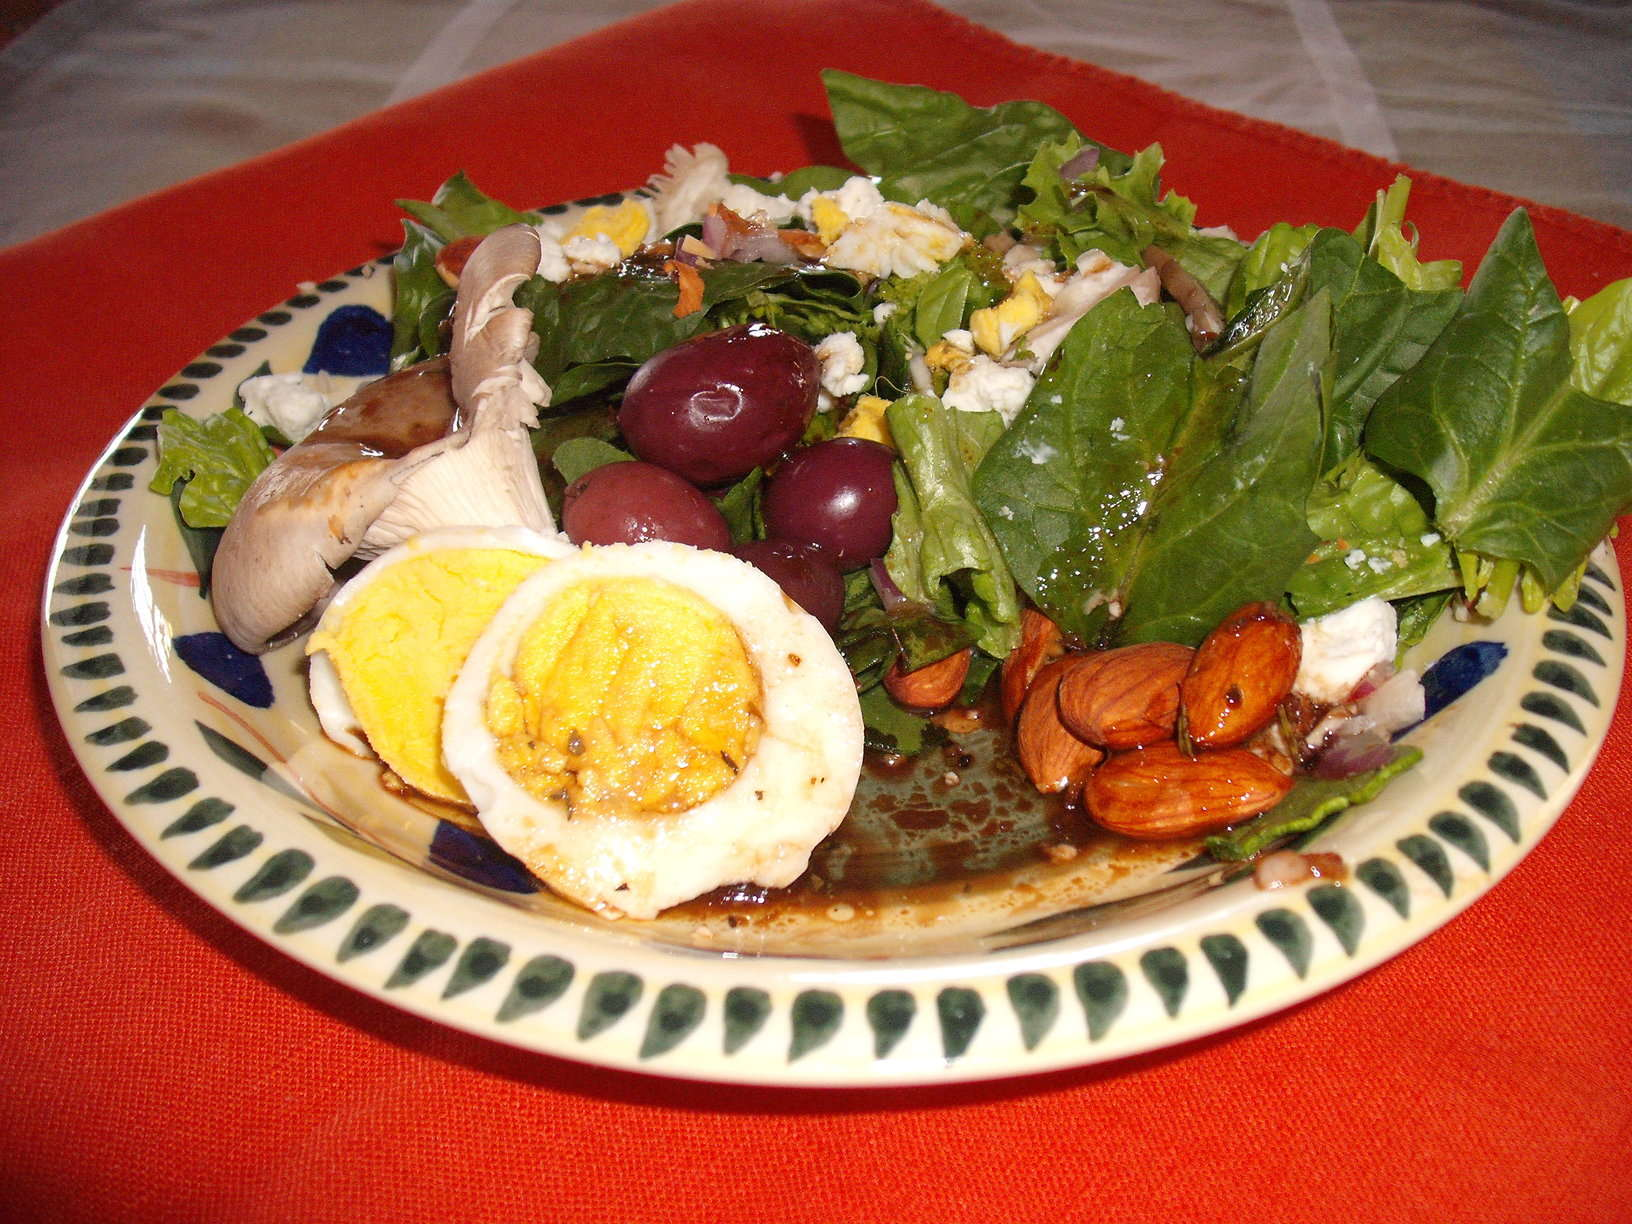 Spinach, Mushroom and Egg Salad with Toasted Almonds, Goat Cheese and Balsamic Vinaigrette